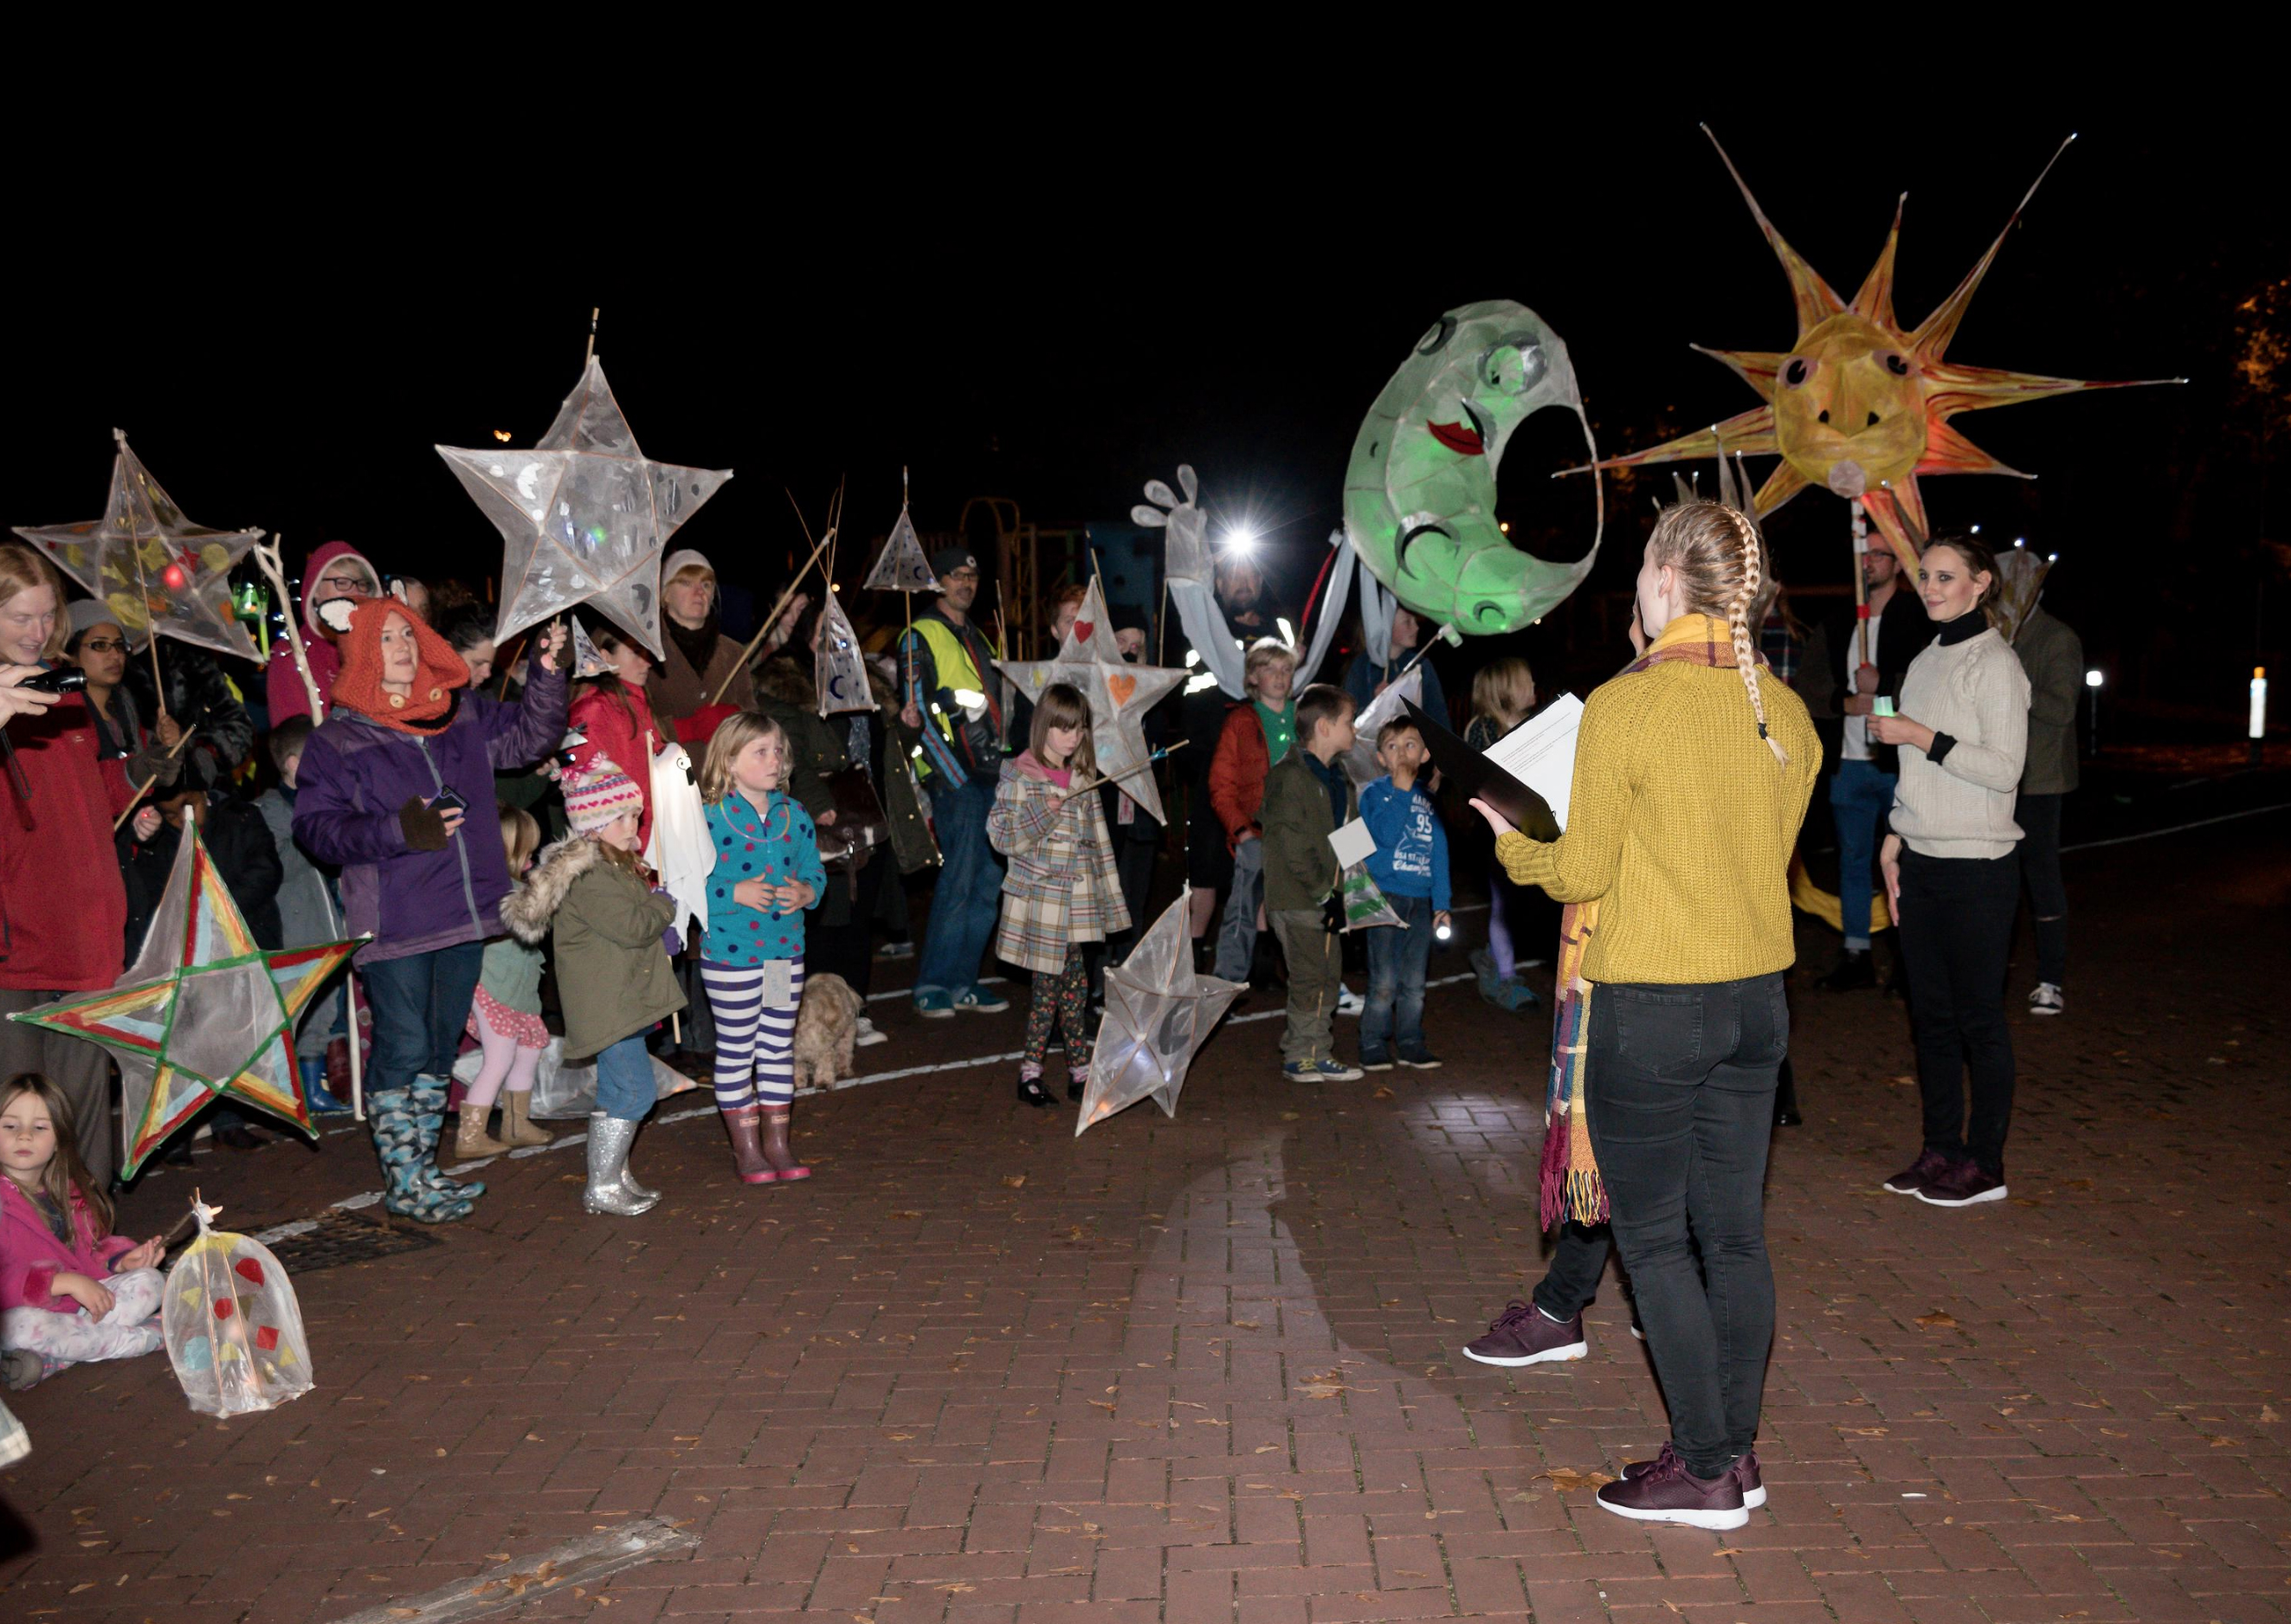 #LOVETHEREANS 2019 Lantern Parade – receives funding from Arts Council England